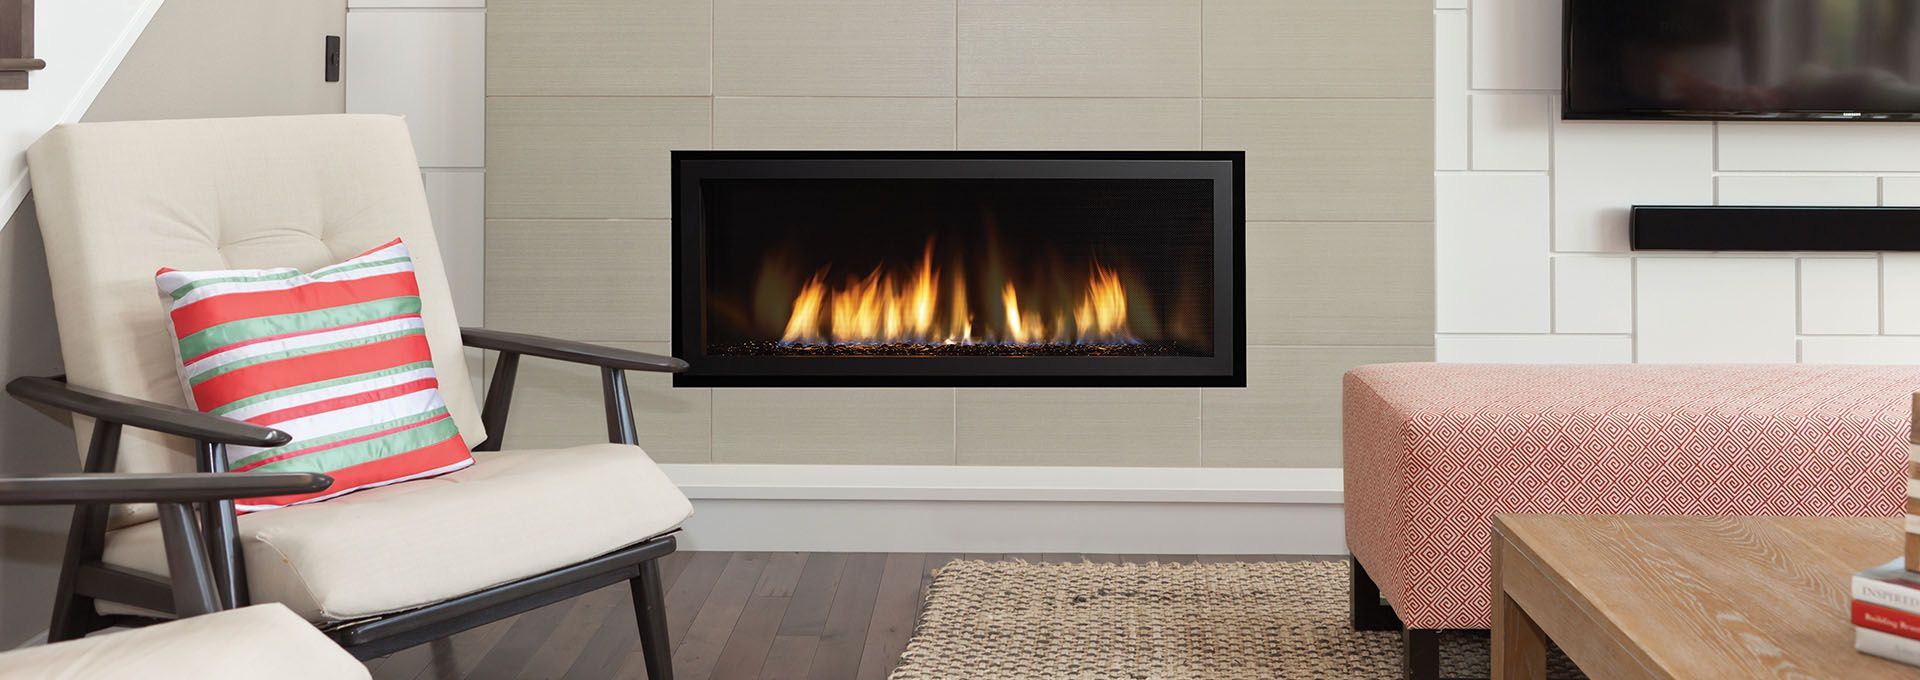 Awesome 10 Perfect Gas Fireplace Insert Reviews For Your Cozy